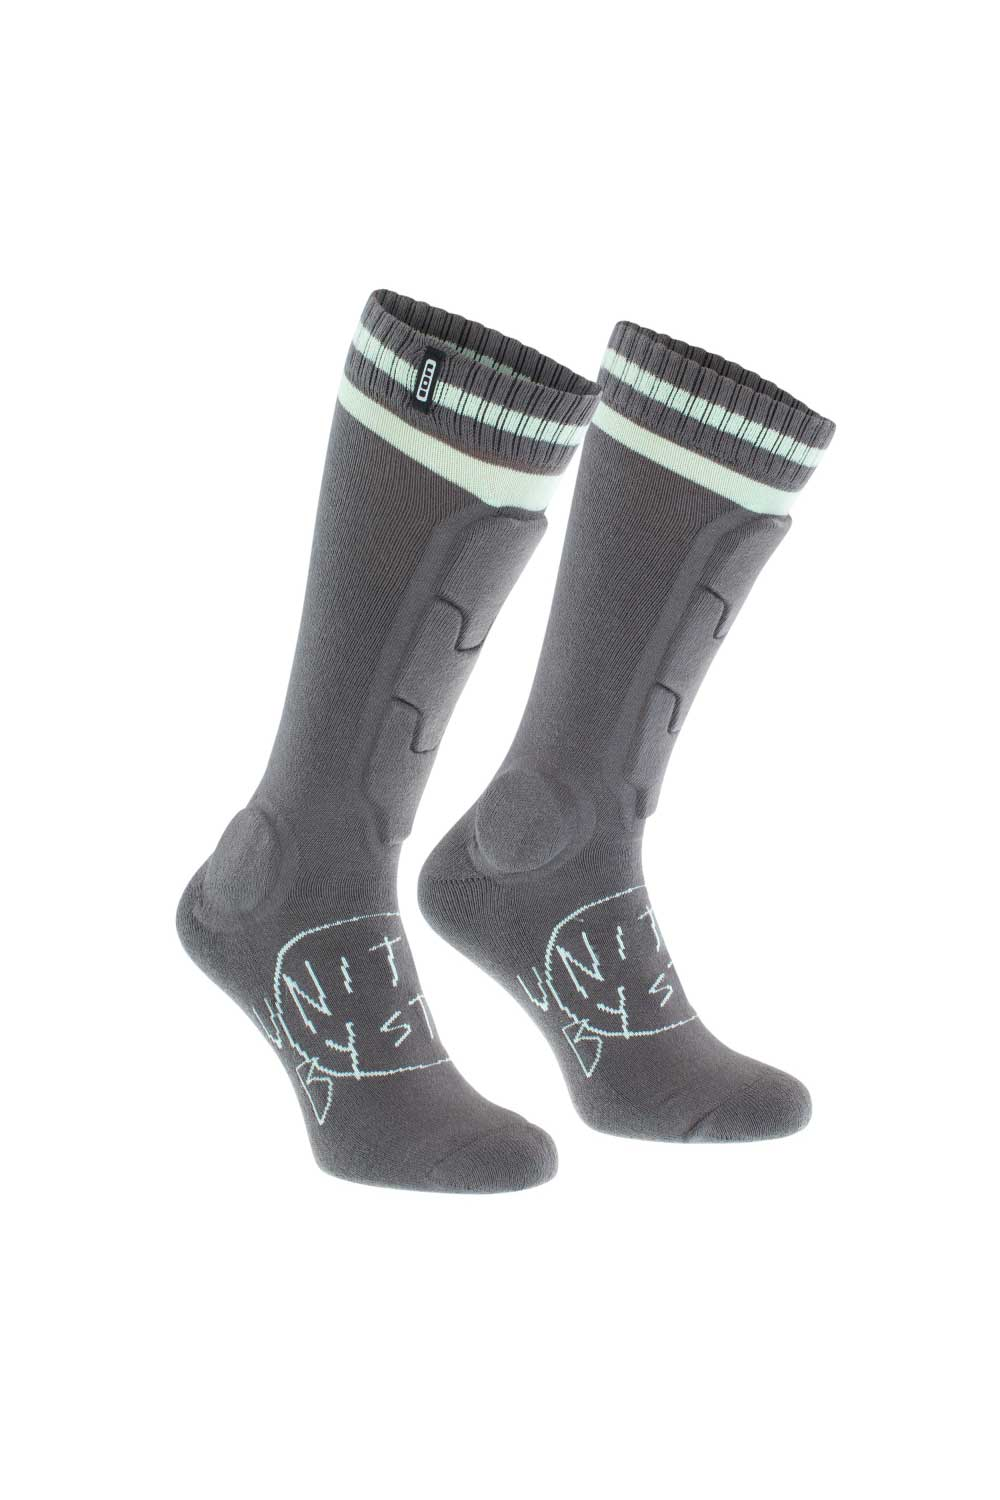 ION MTB BD-SOCKS 2.0 Shin Protection